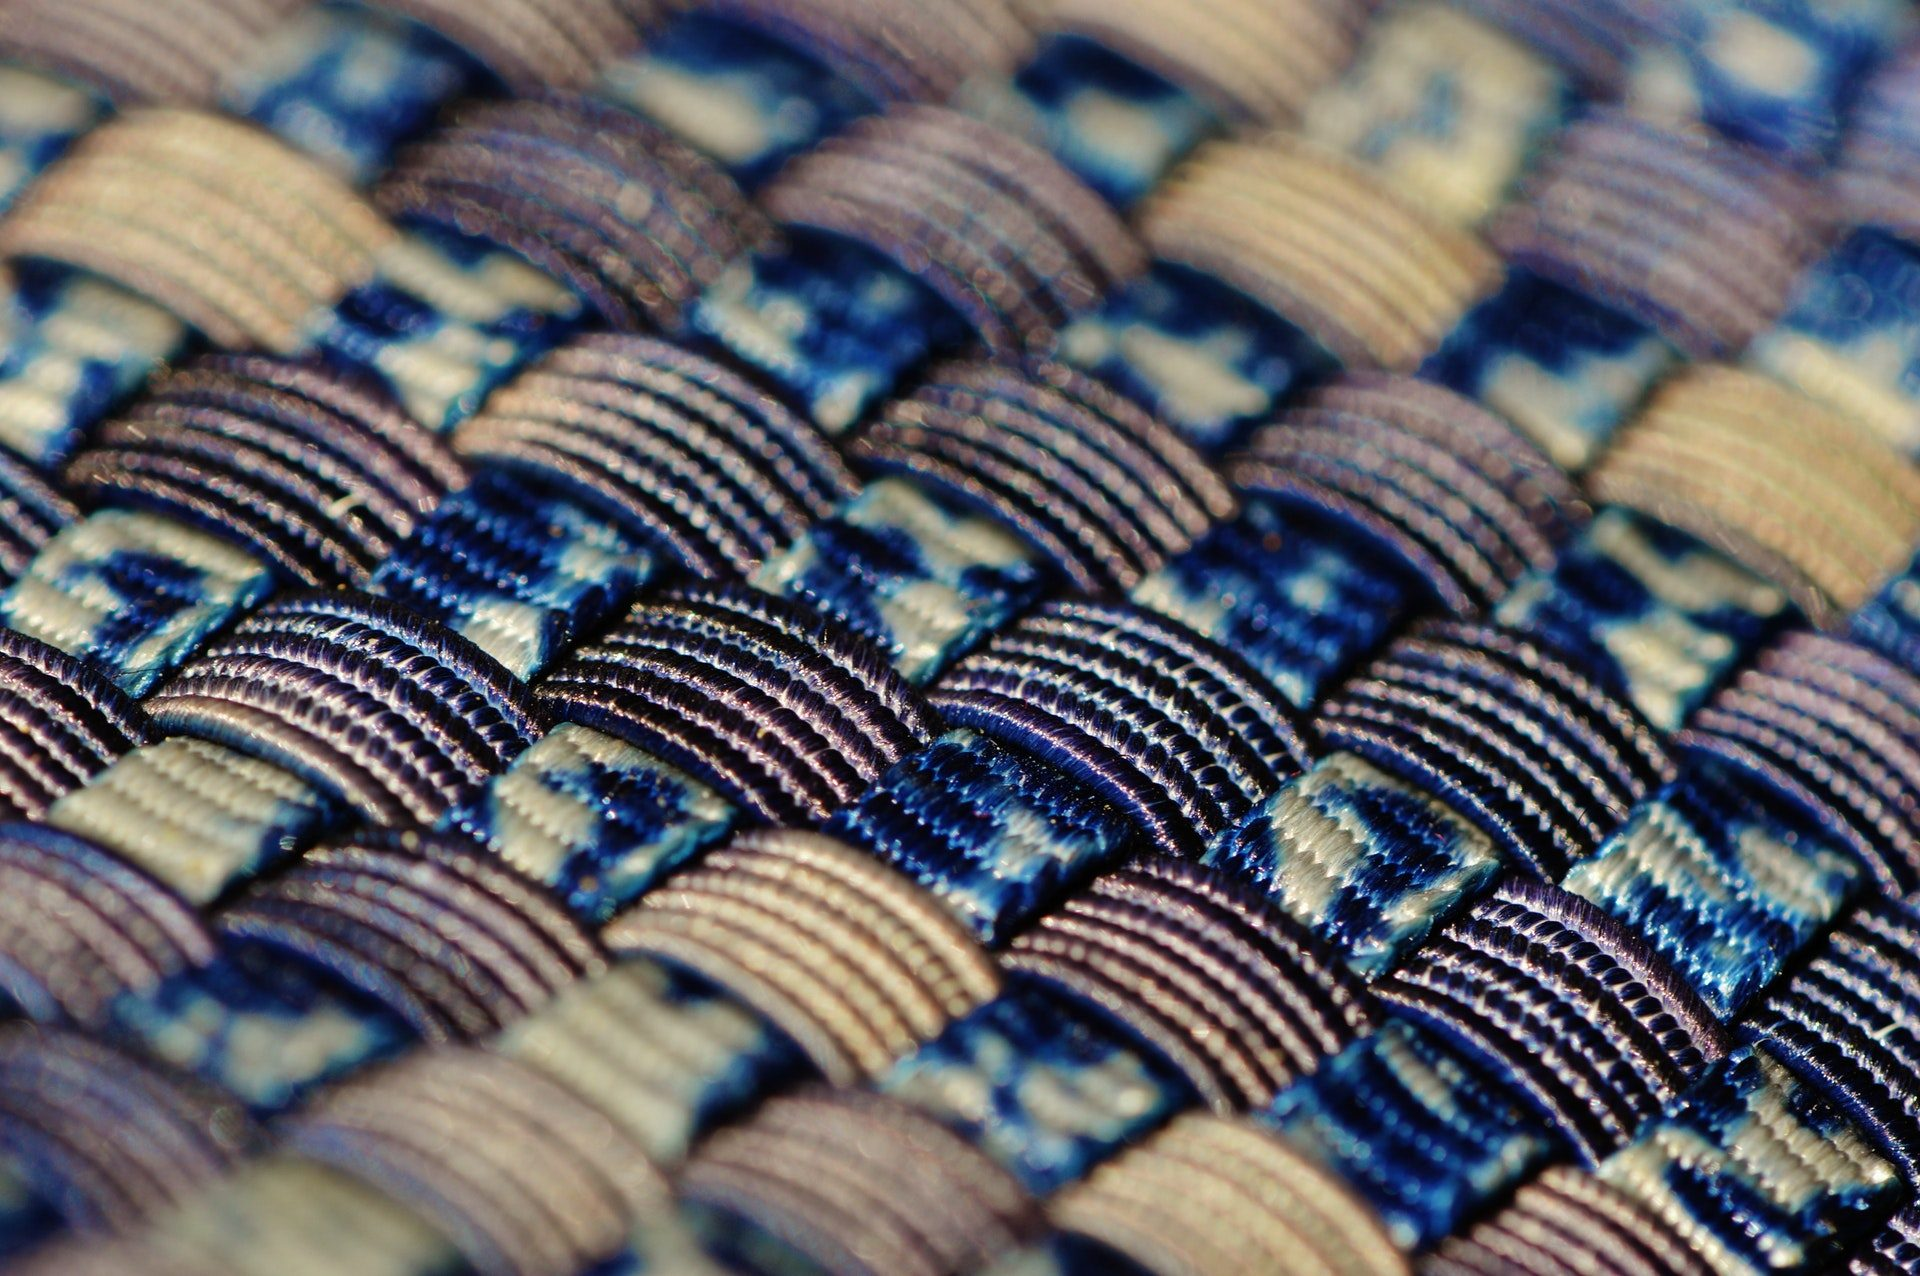 blue-black-and-gold-woven-textile-159049